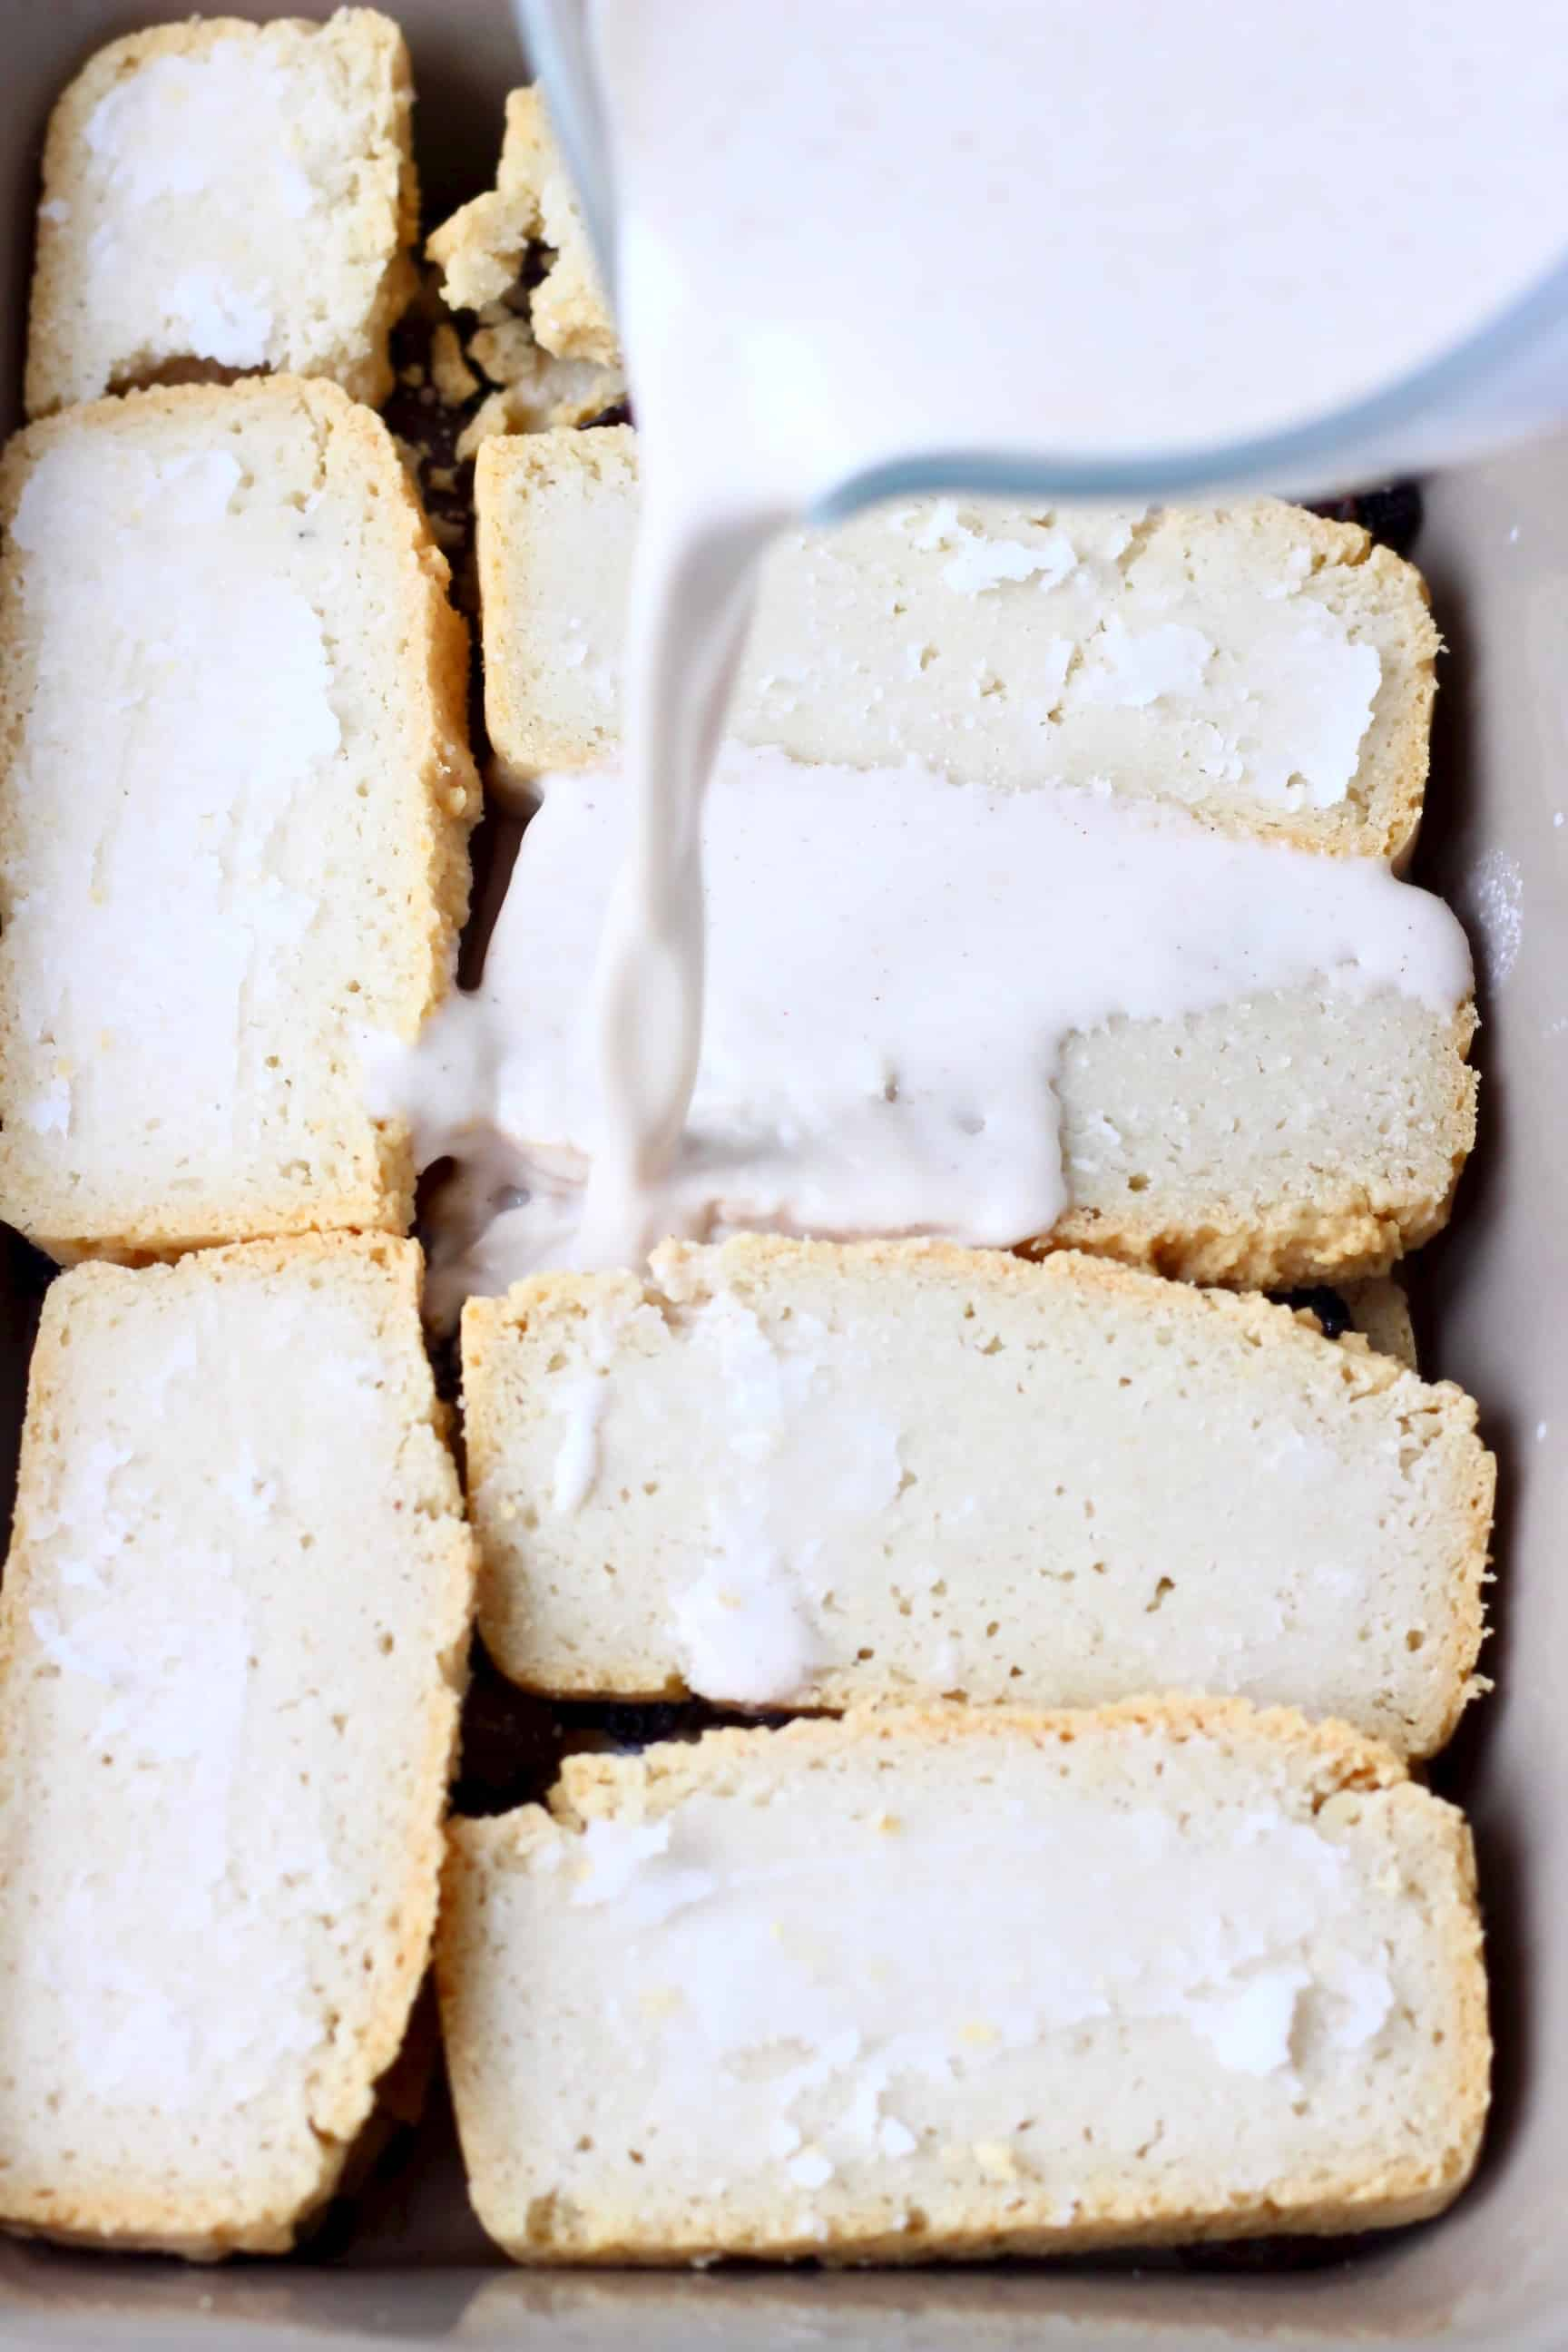 Slices of bread in a grey rectangular baking dish with a white cream being poured over the top with a glass jug